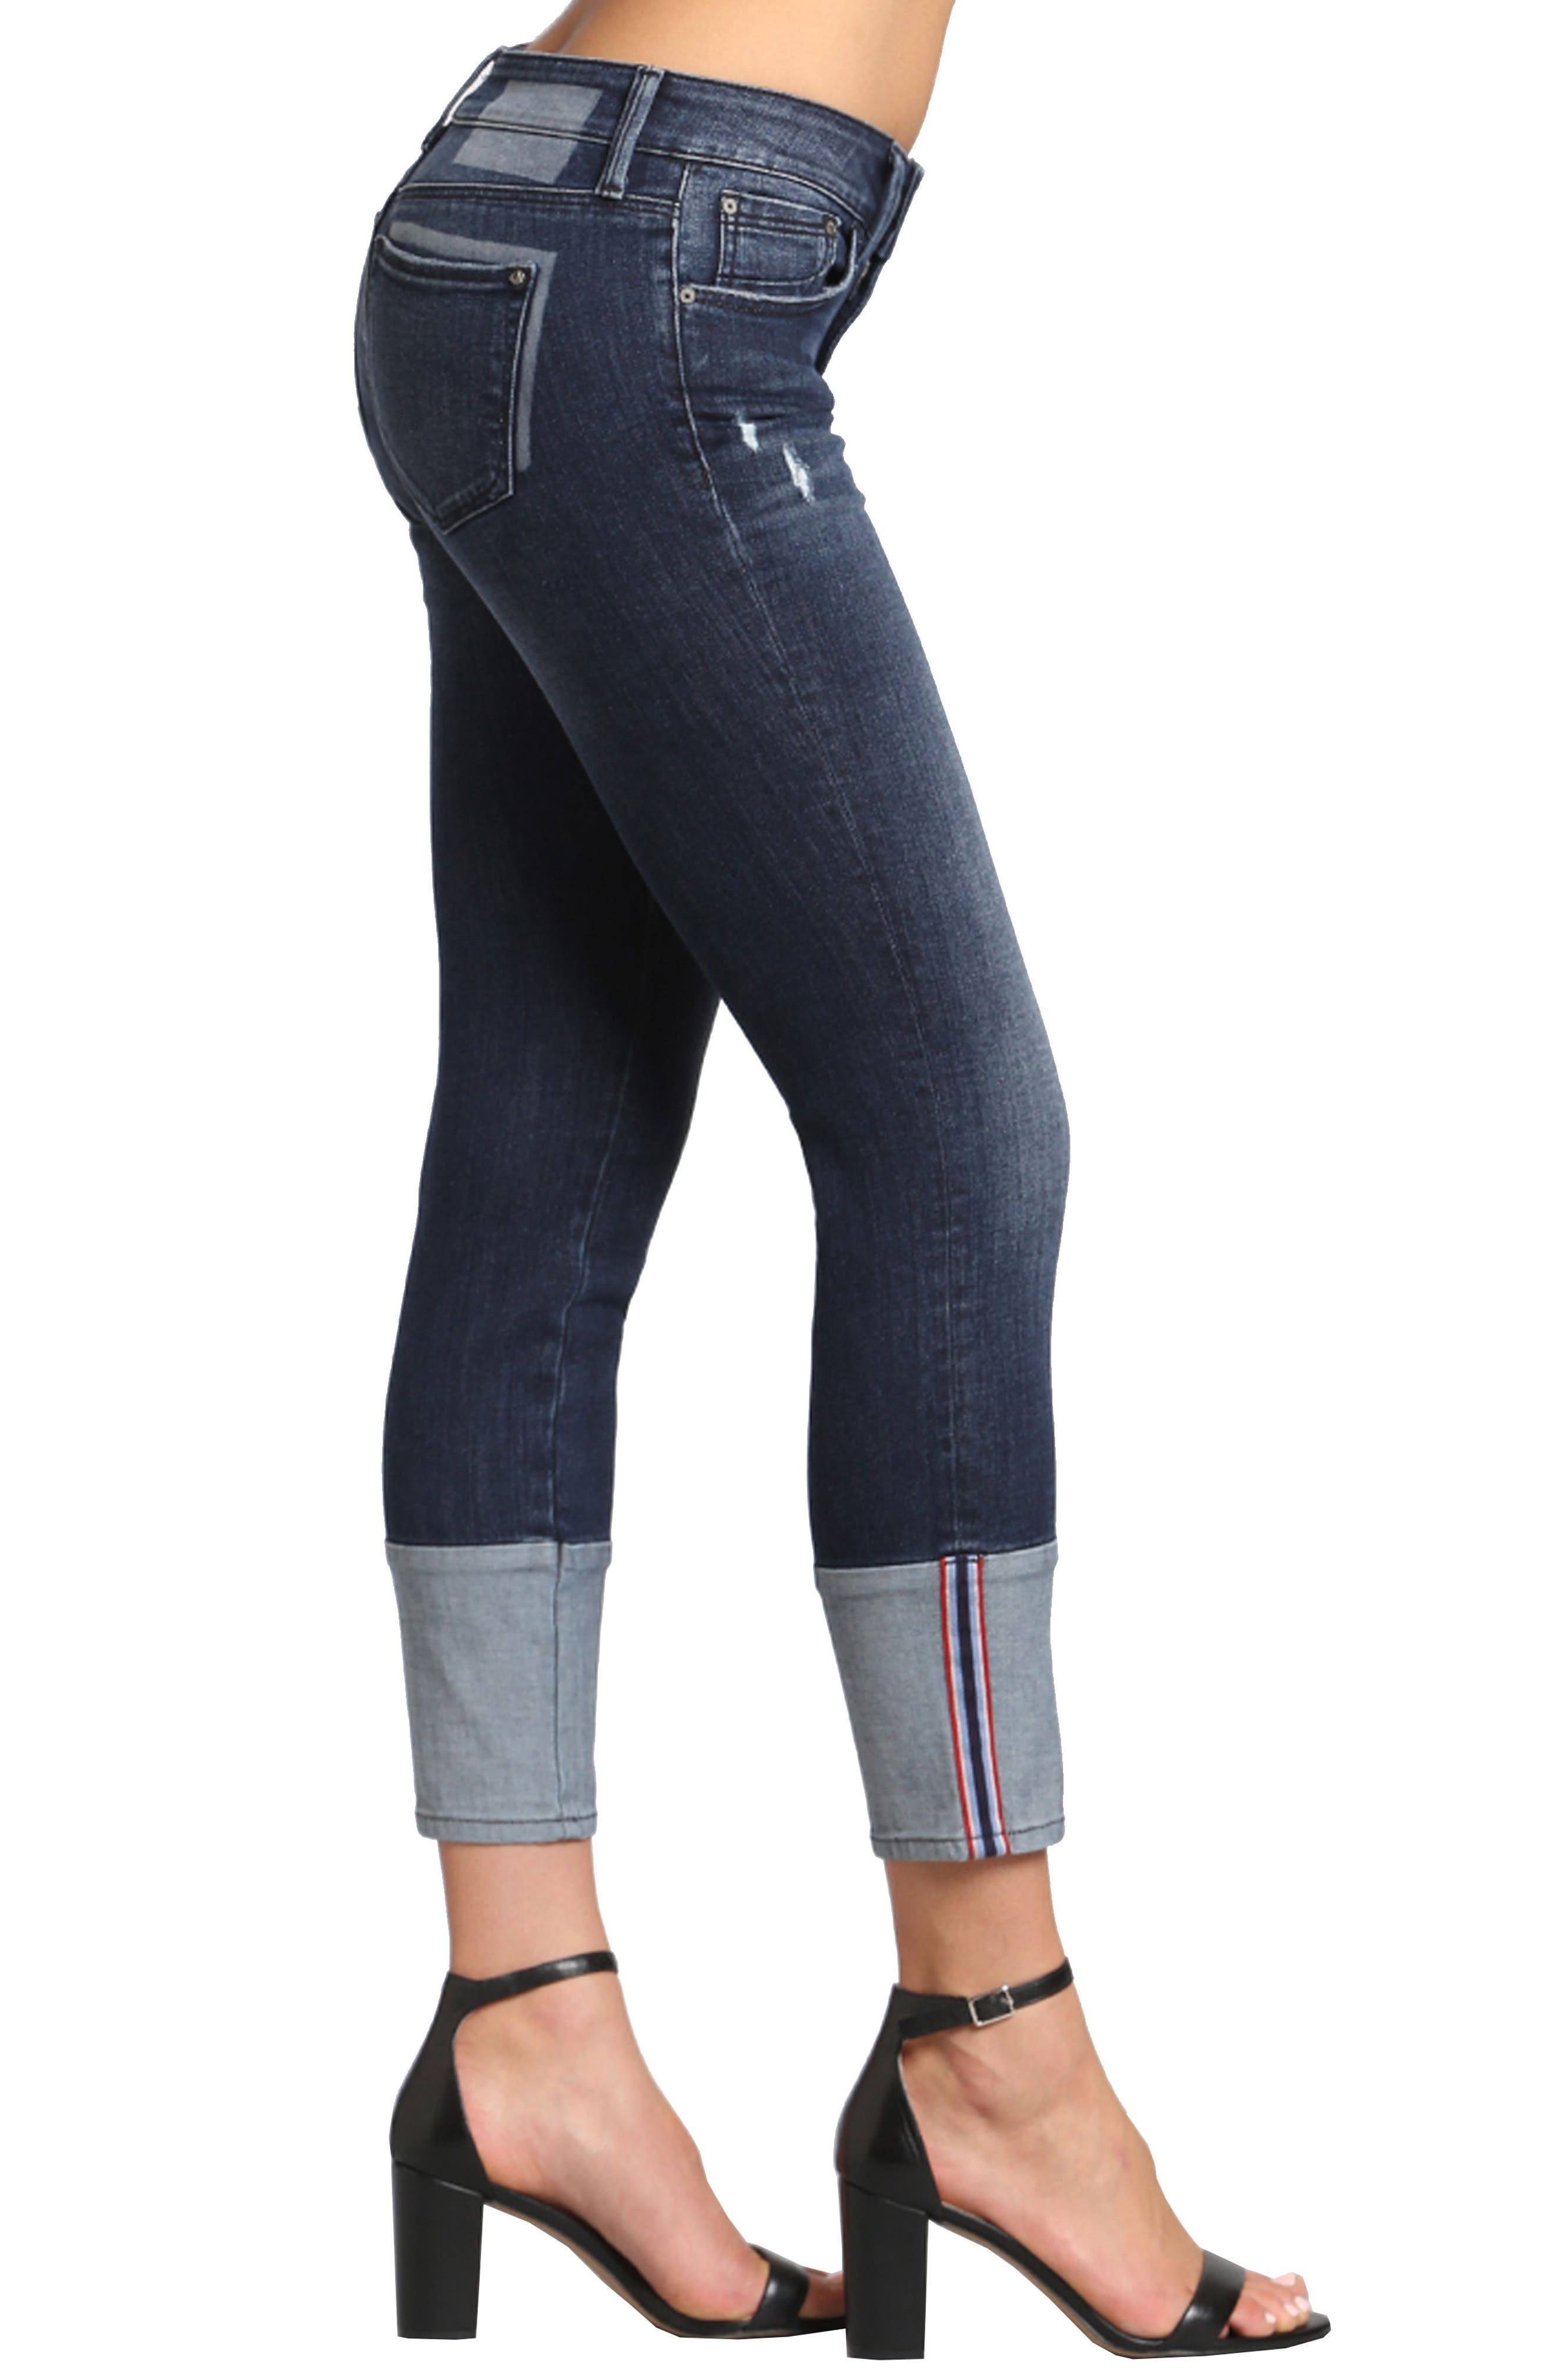 Caisy Cuffed Skinny Crop Jeans,                             Alternate thumbnail 3, color,                             Dark Vintage